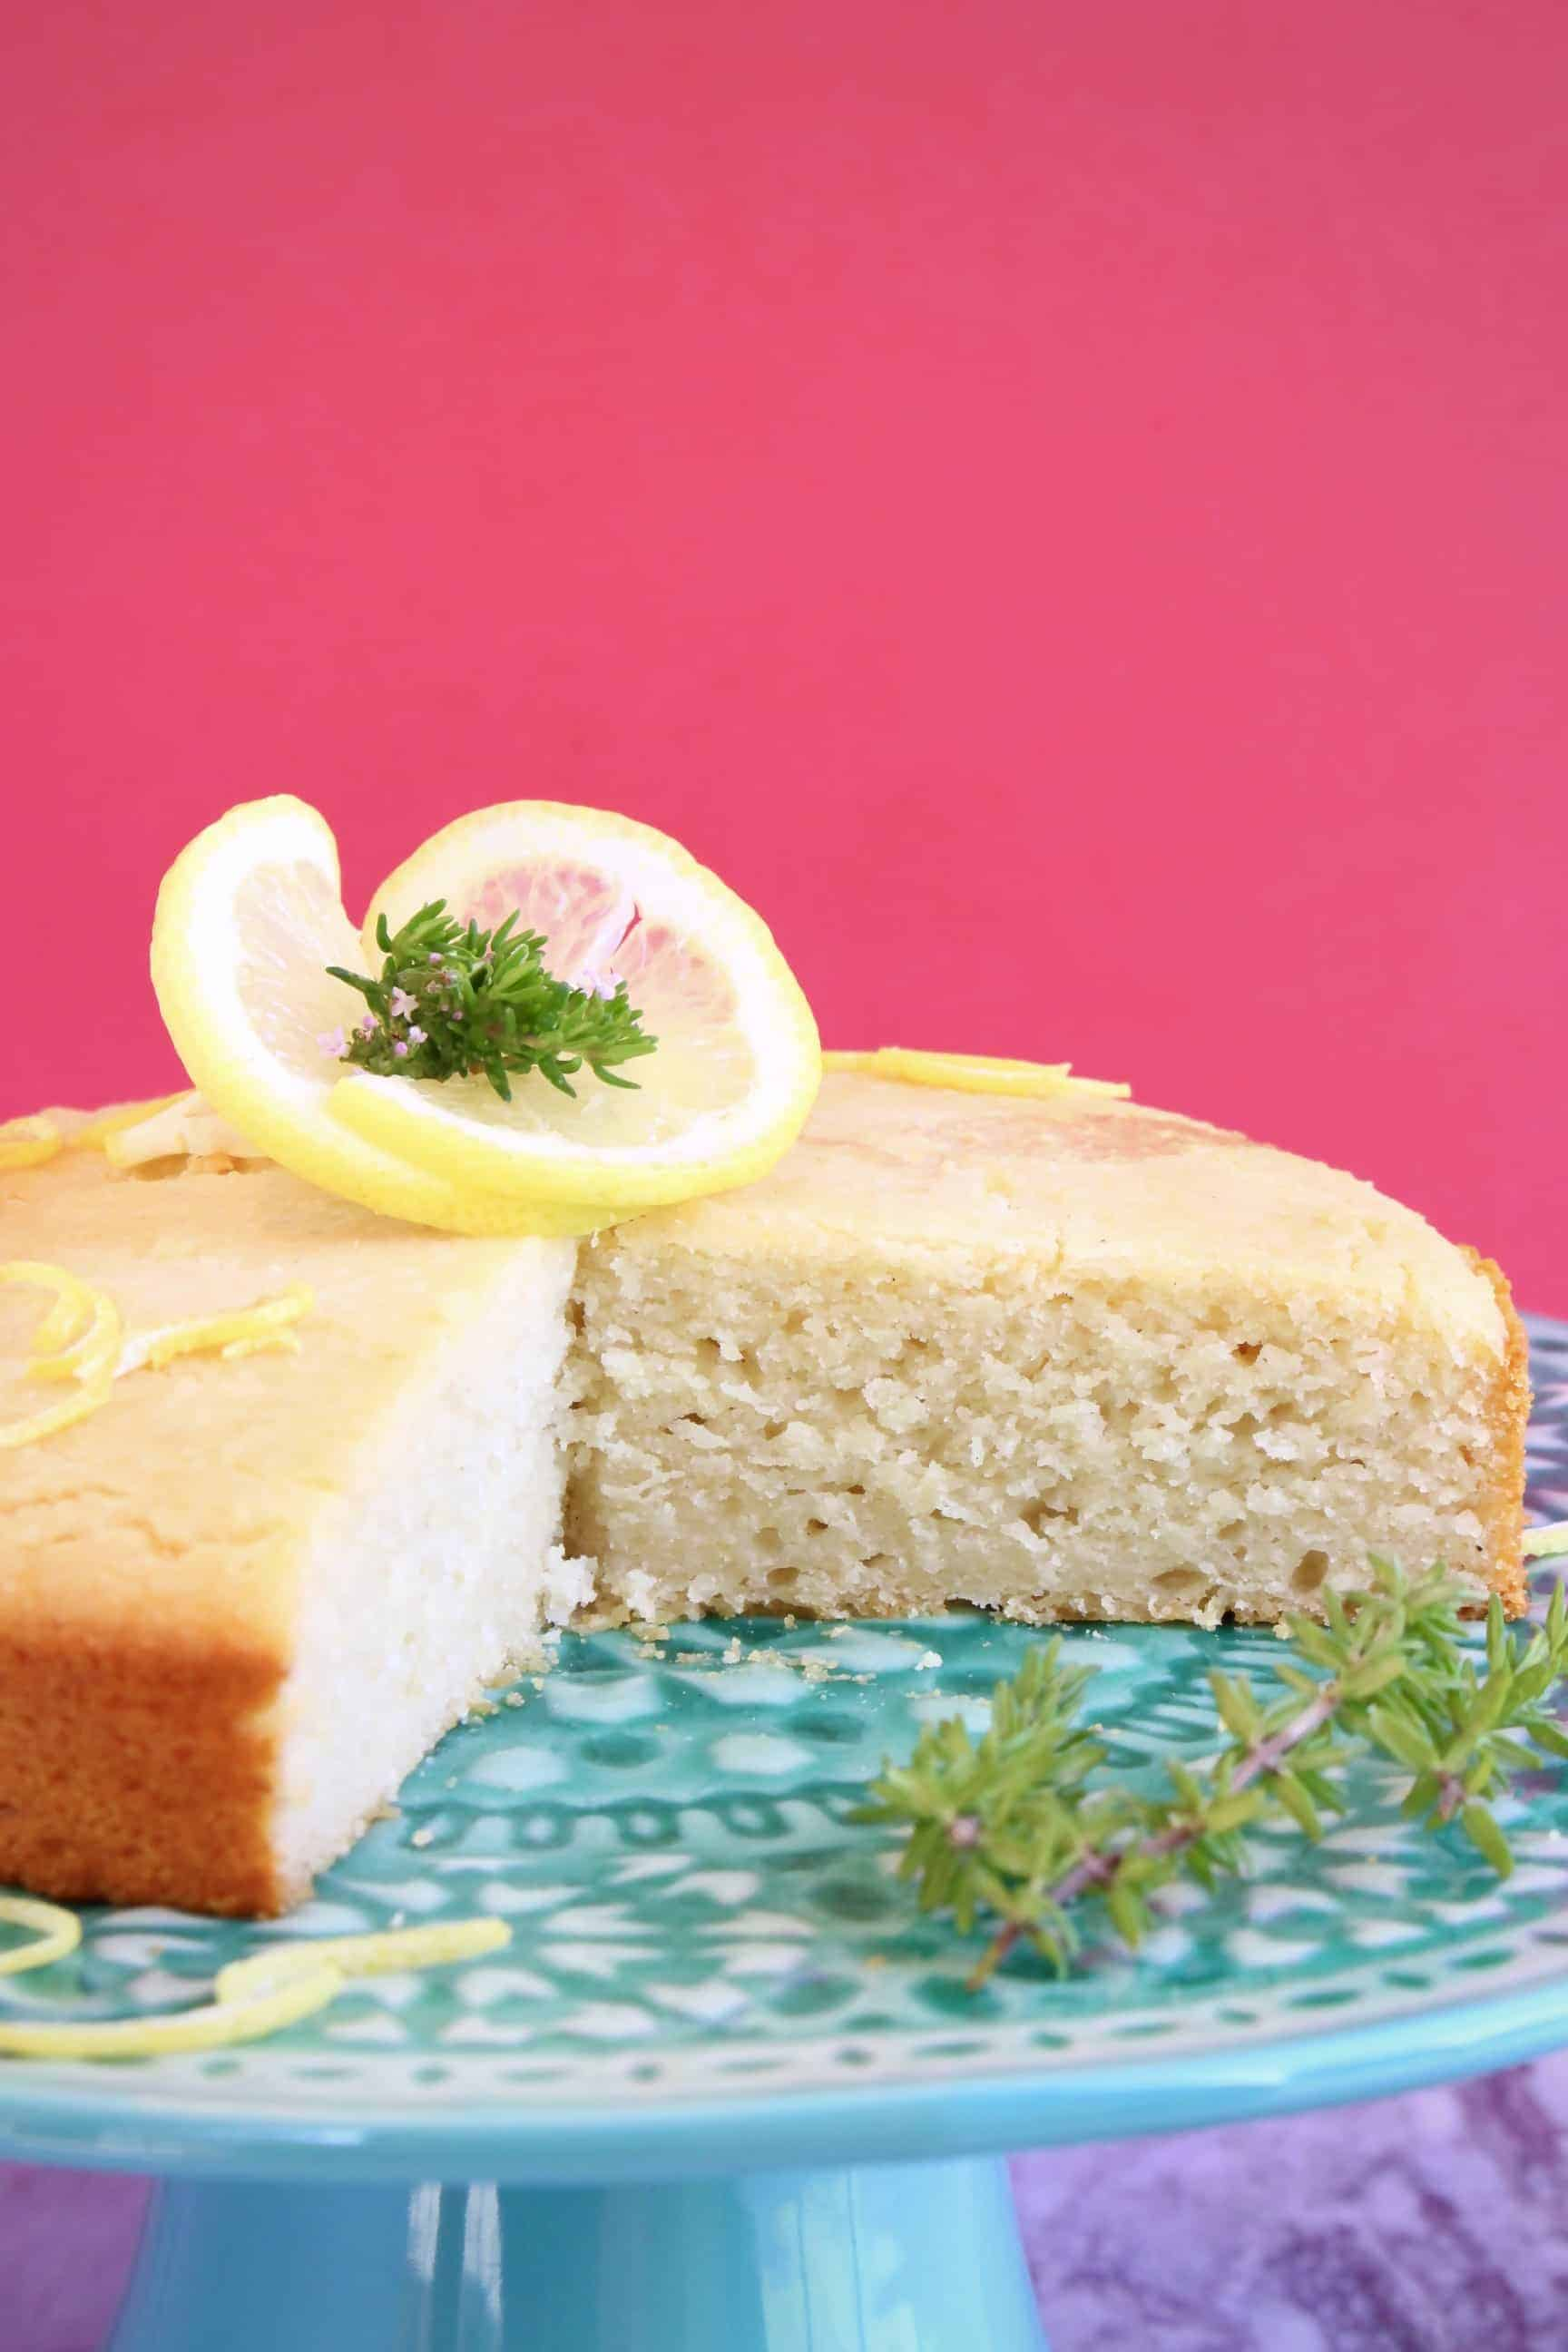 Gluten-free vegan lemon drizzle cake with a slice taken out of it on a blue cake stand with a bright pink background